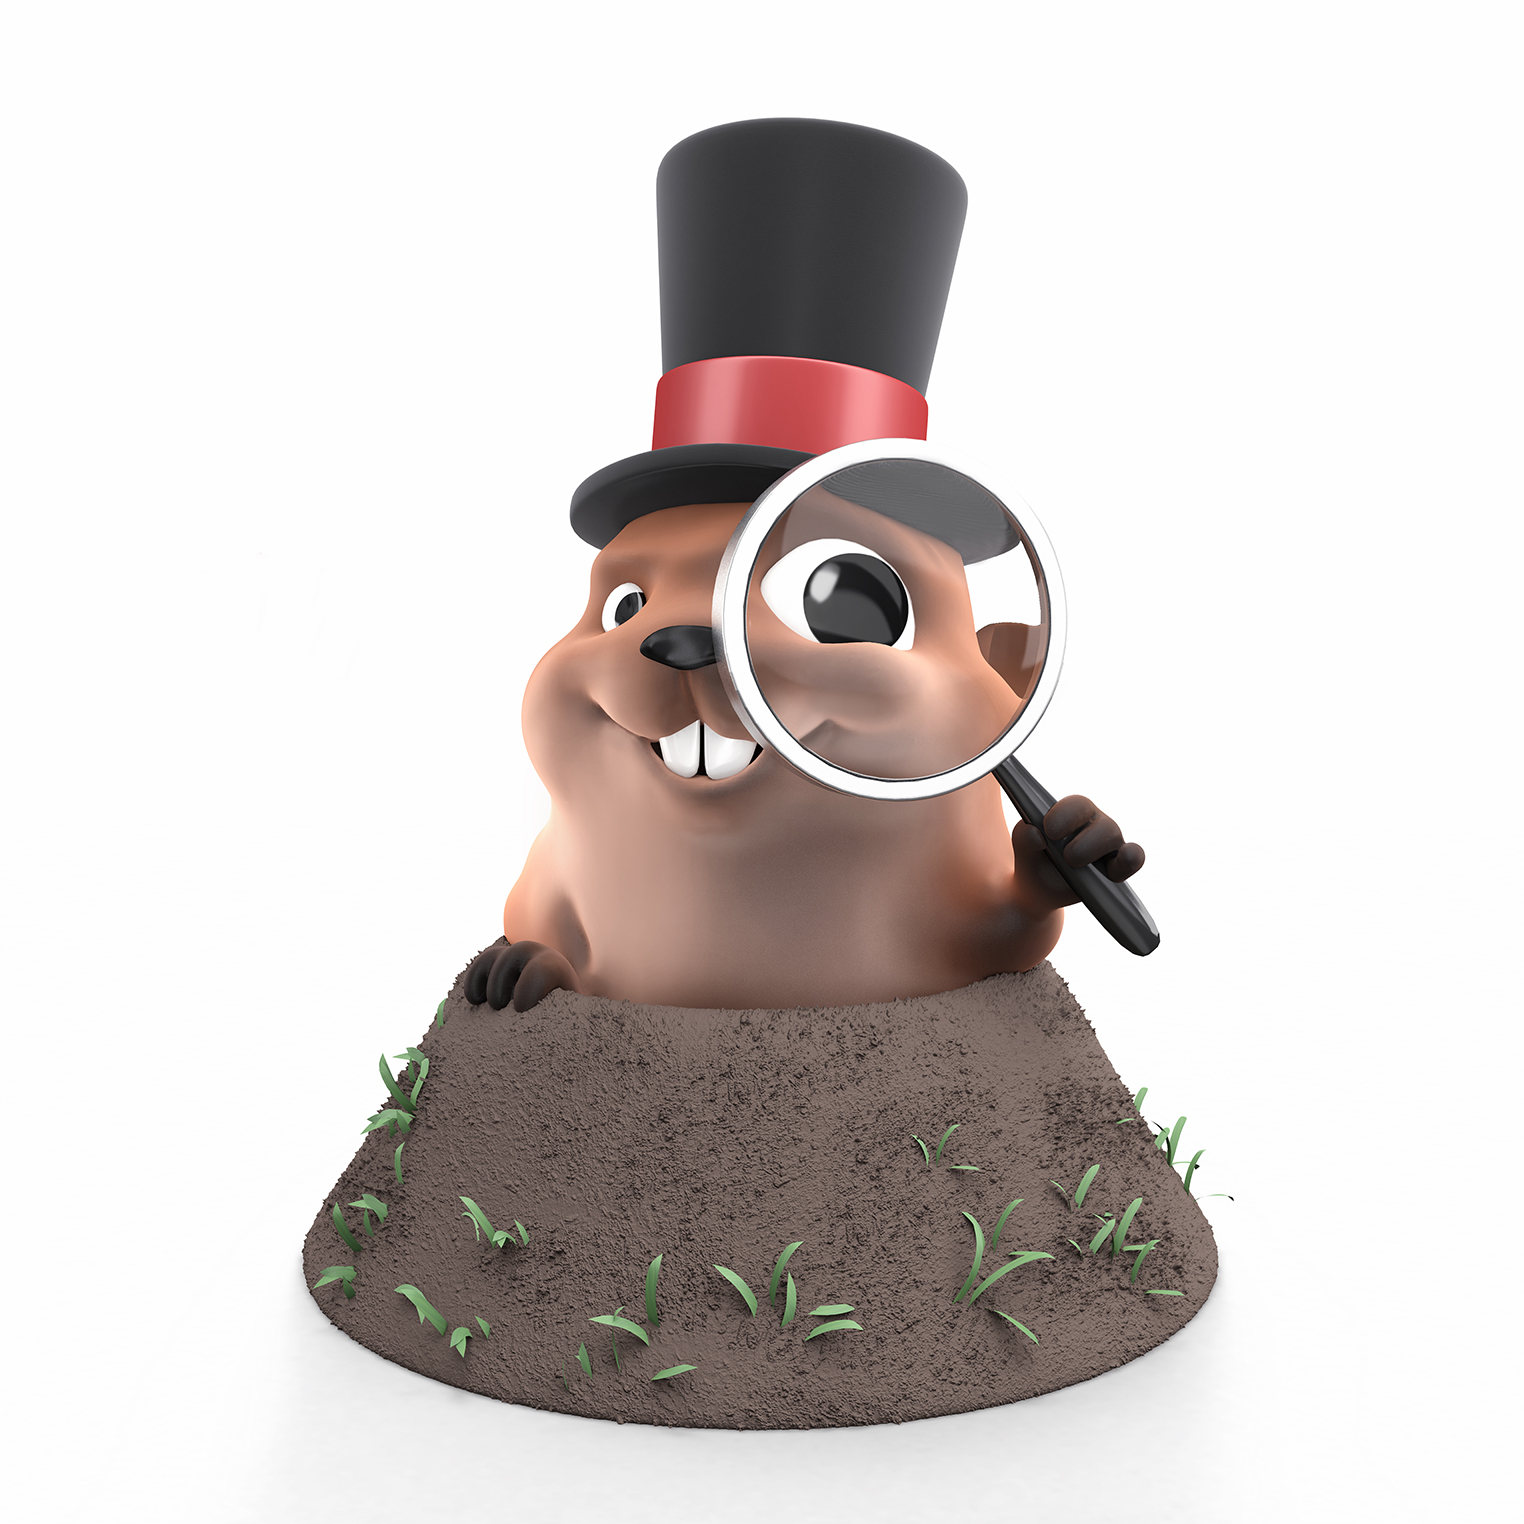 Fast-Company-Mascot-Marketing-1groundhog_o.jpg